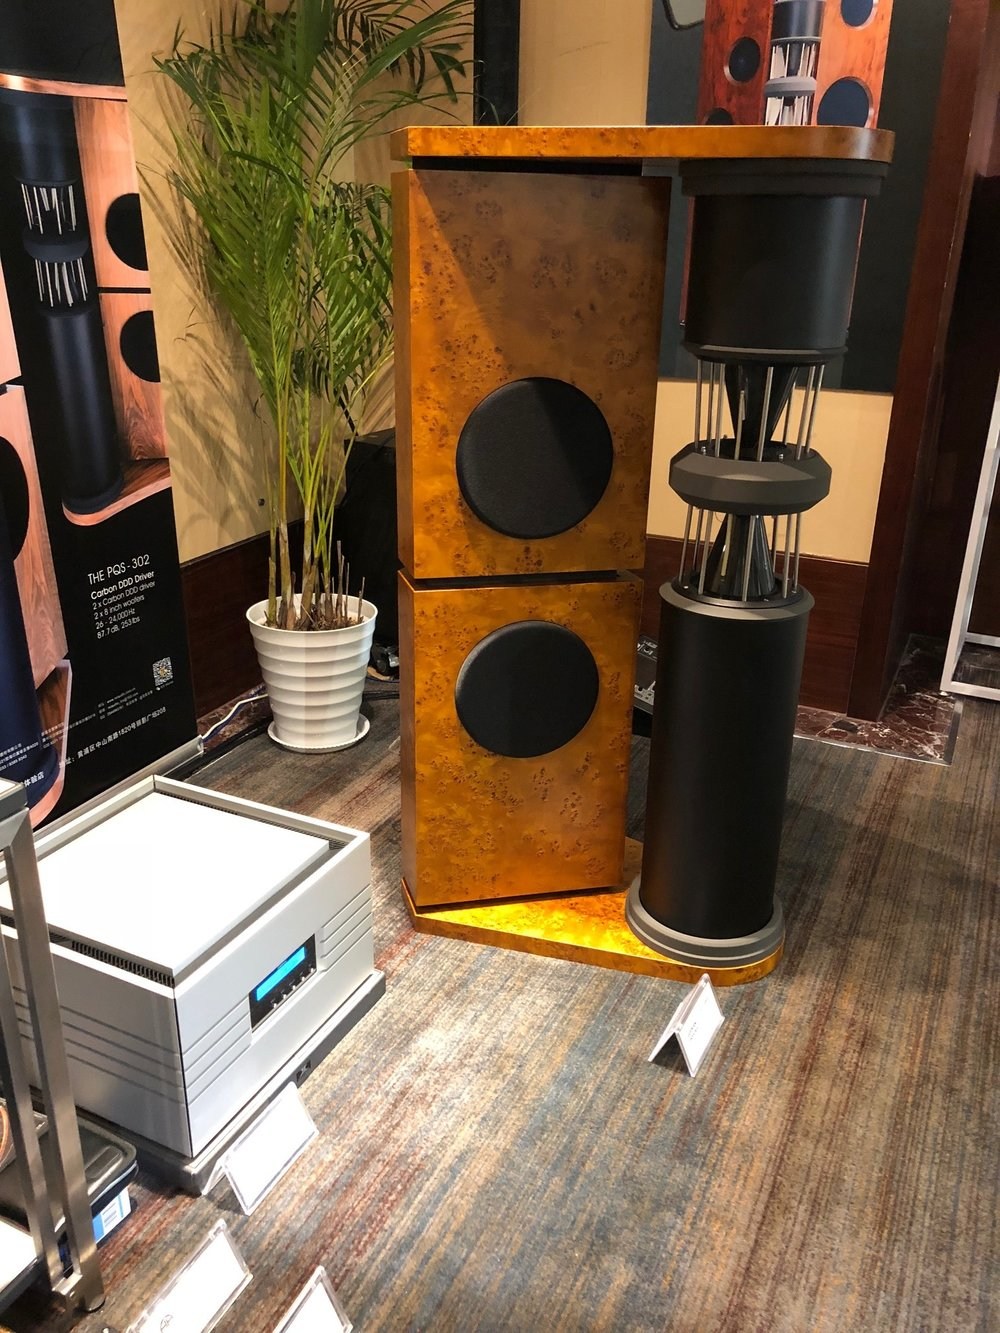 PQS-302 loudspeaker with Emperor Extreme mono amplifier | Shanghai Show 2018, China